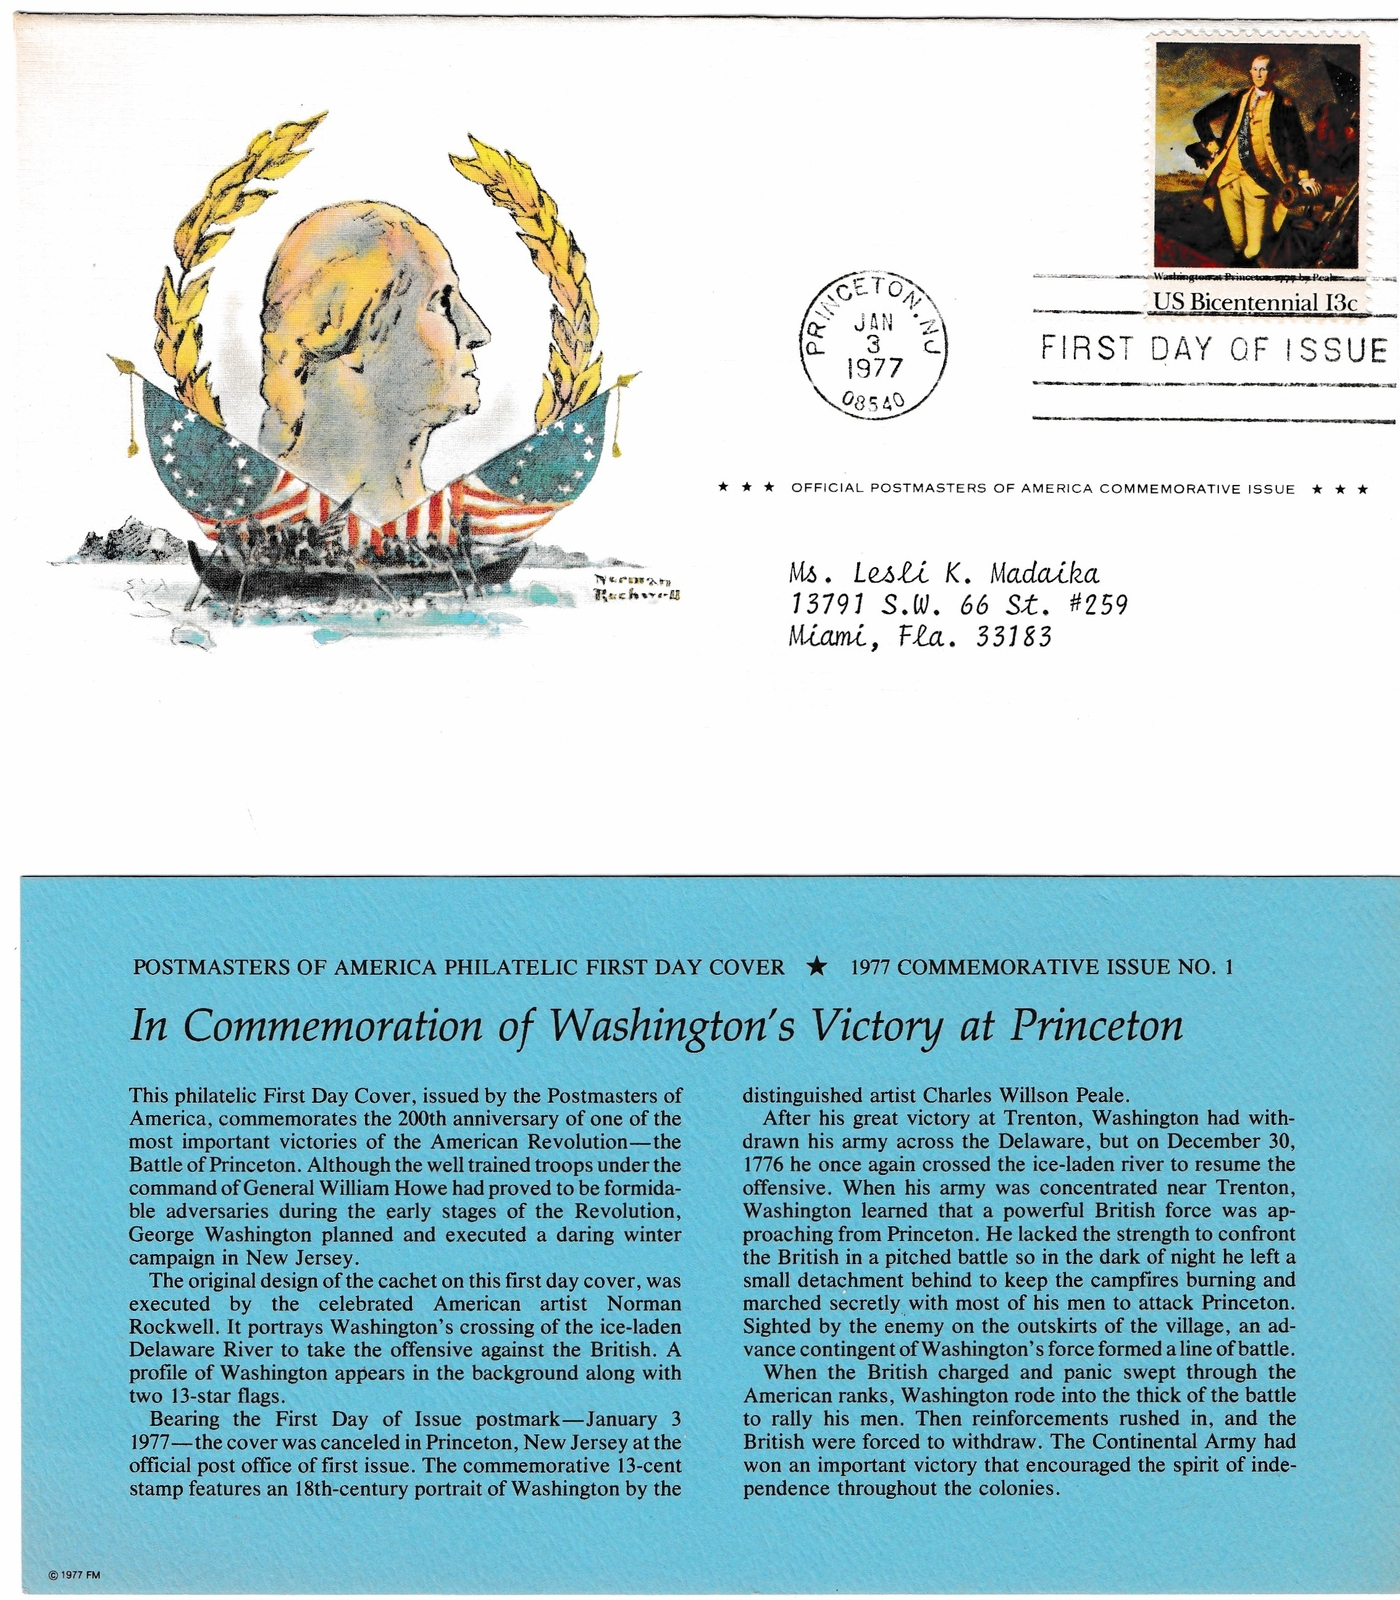 Primary image for 1st Day of Issue, Washington 13 cent USPS Stamp, Official Postmasters of America